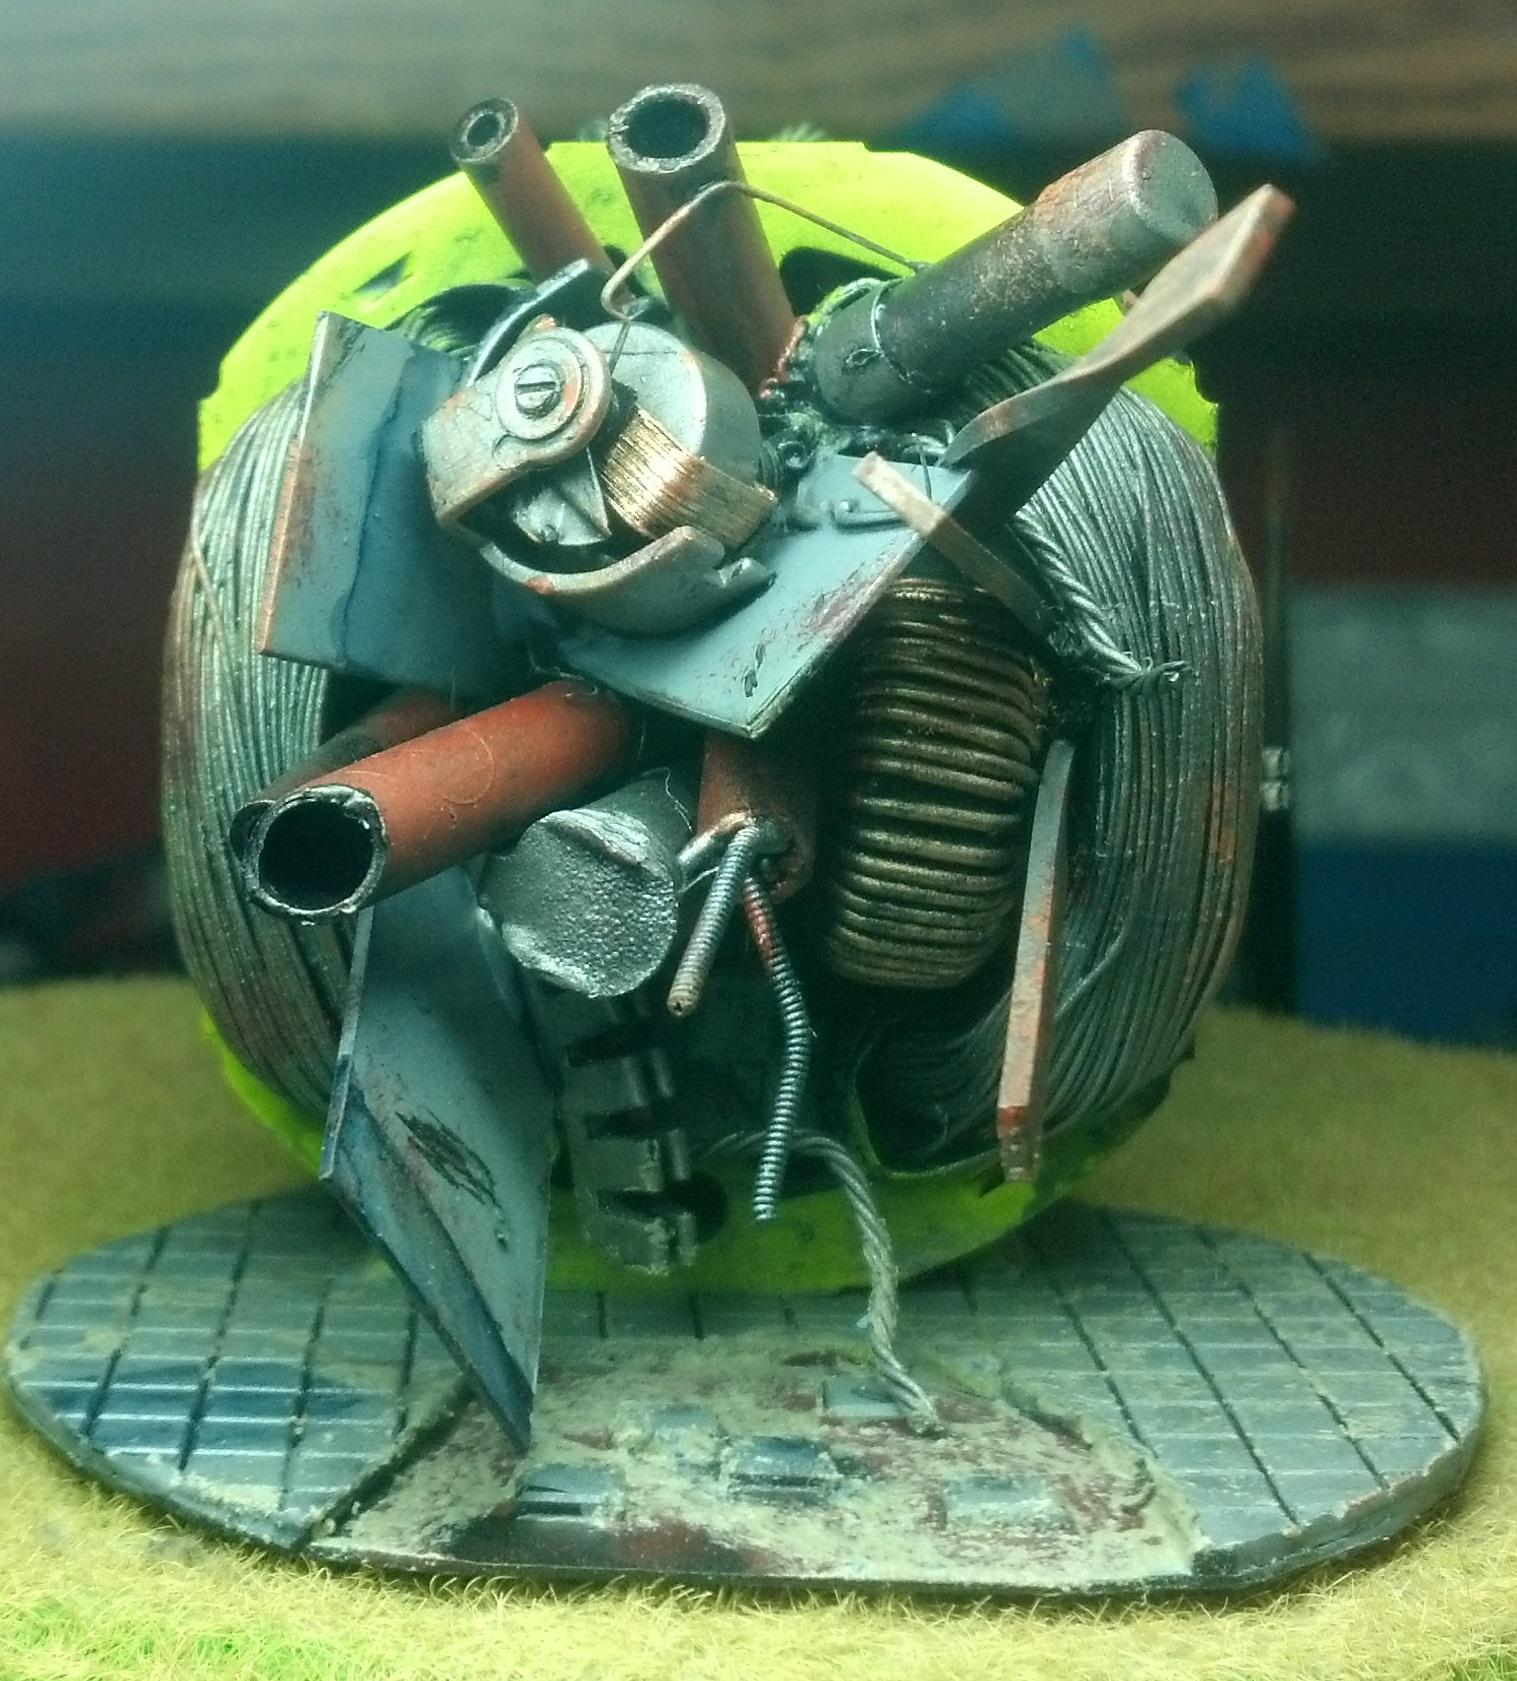 Chipping, Junk, Oil, Pile, Portal, Rust, Scratches, Terrain, Weathering Pigment